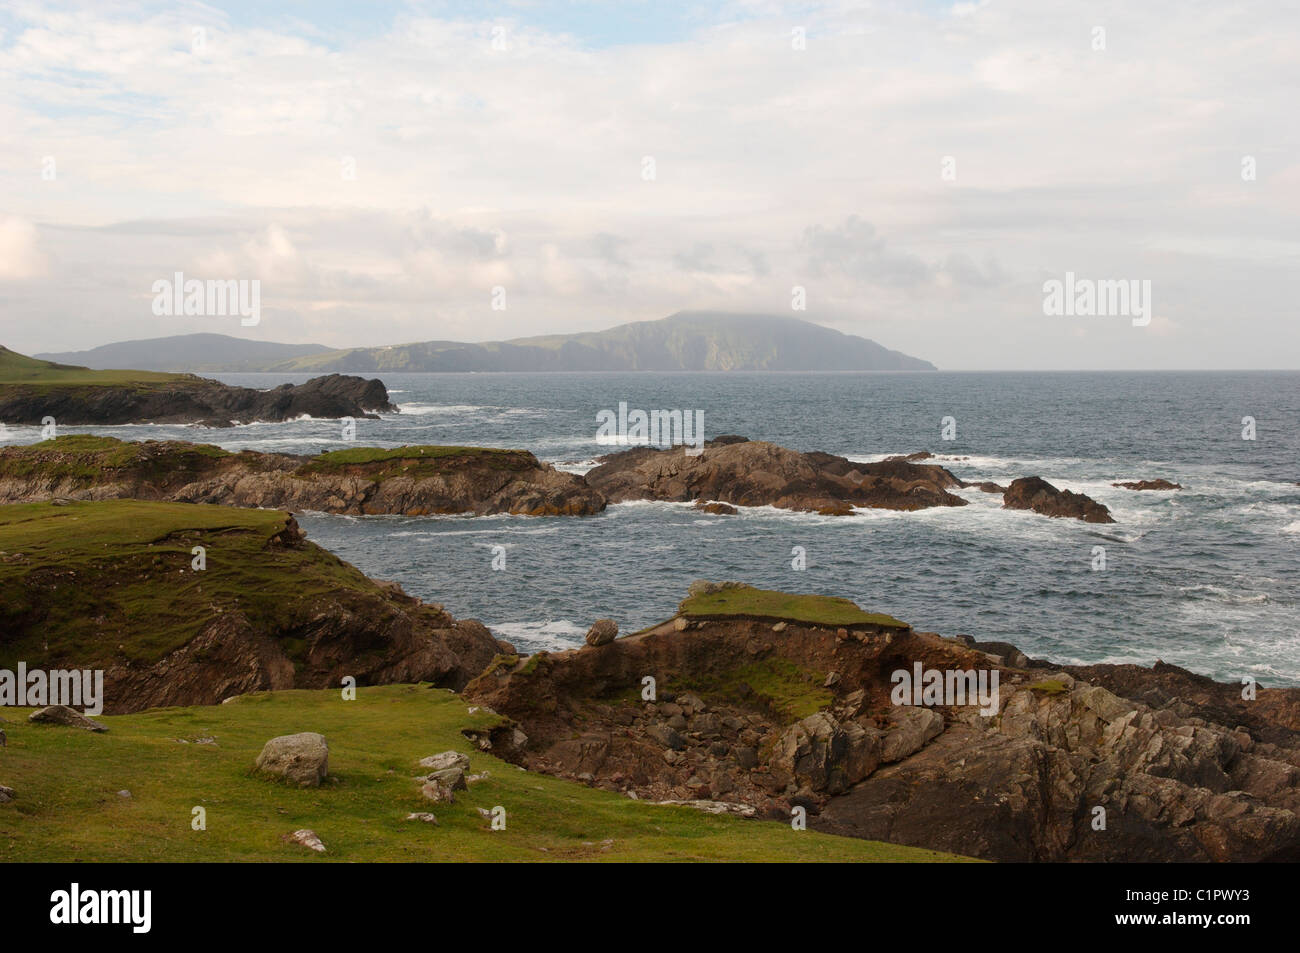 Republic of Ireland, County Mayo, view of Clare island from Achill Island - Stock Image